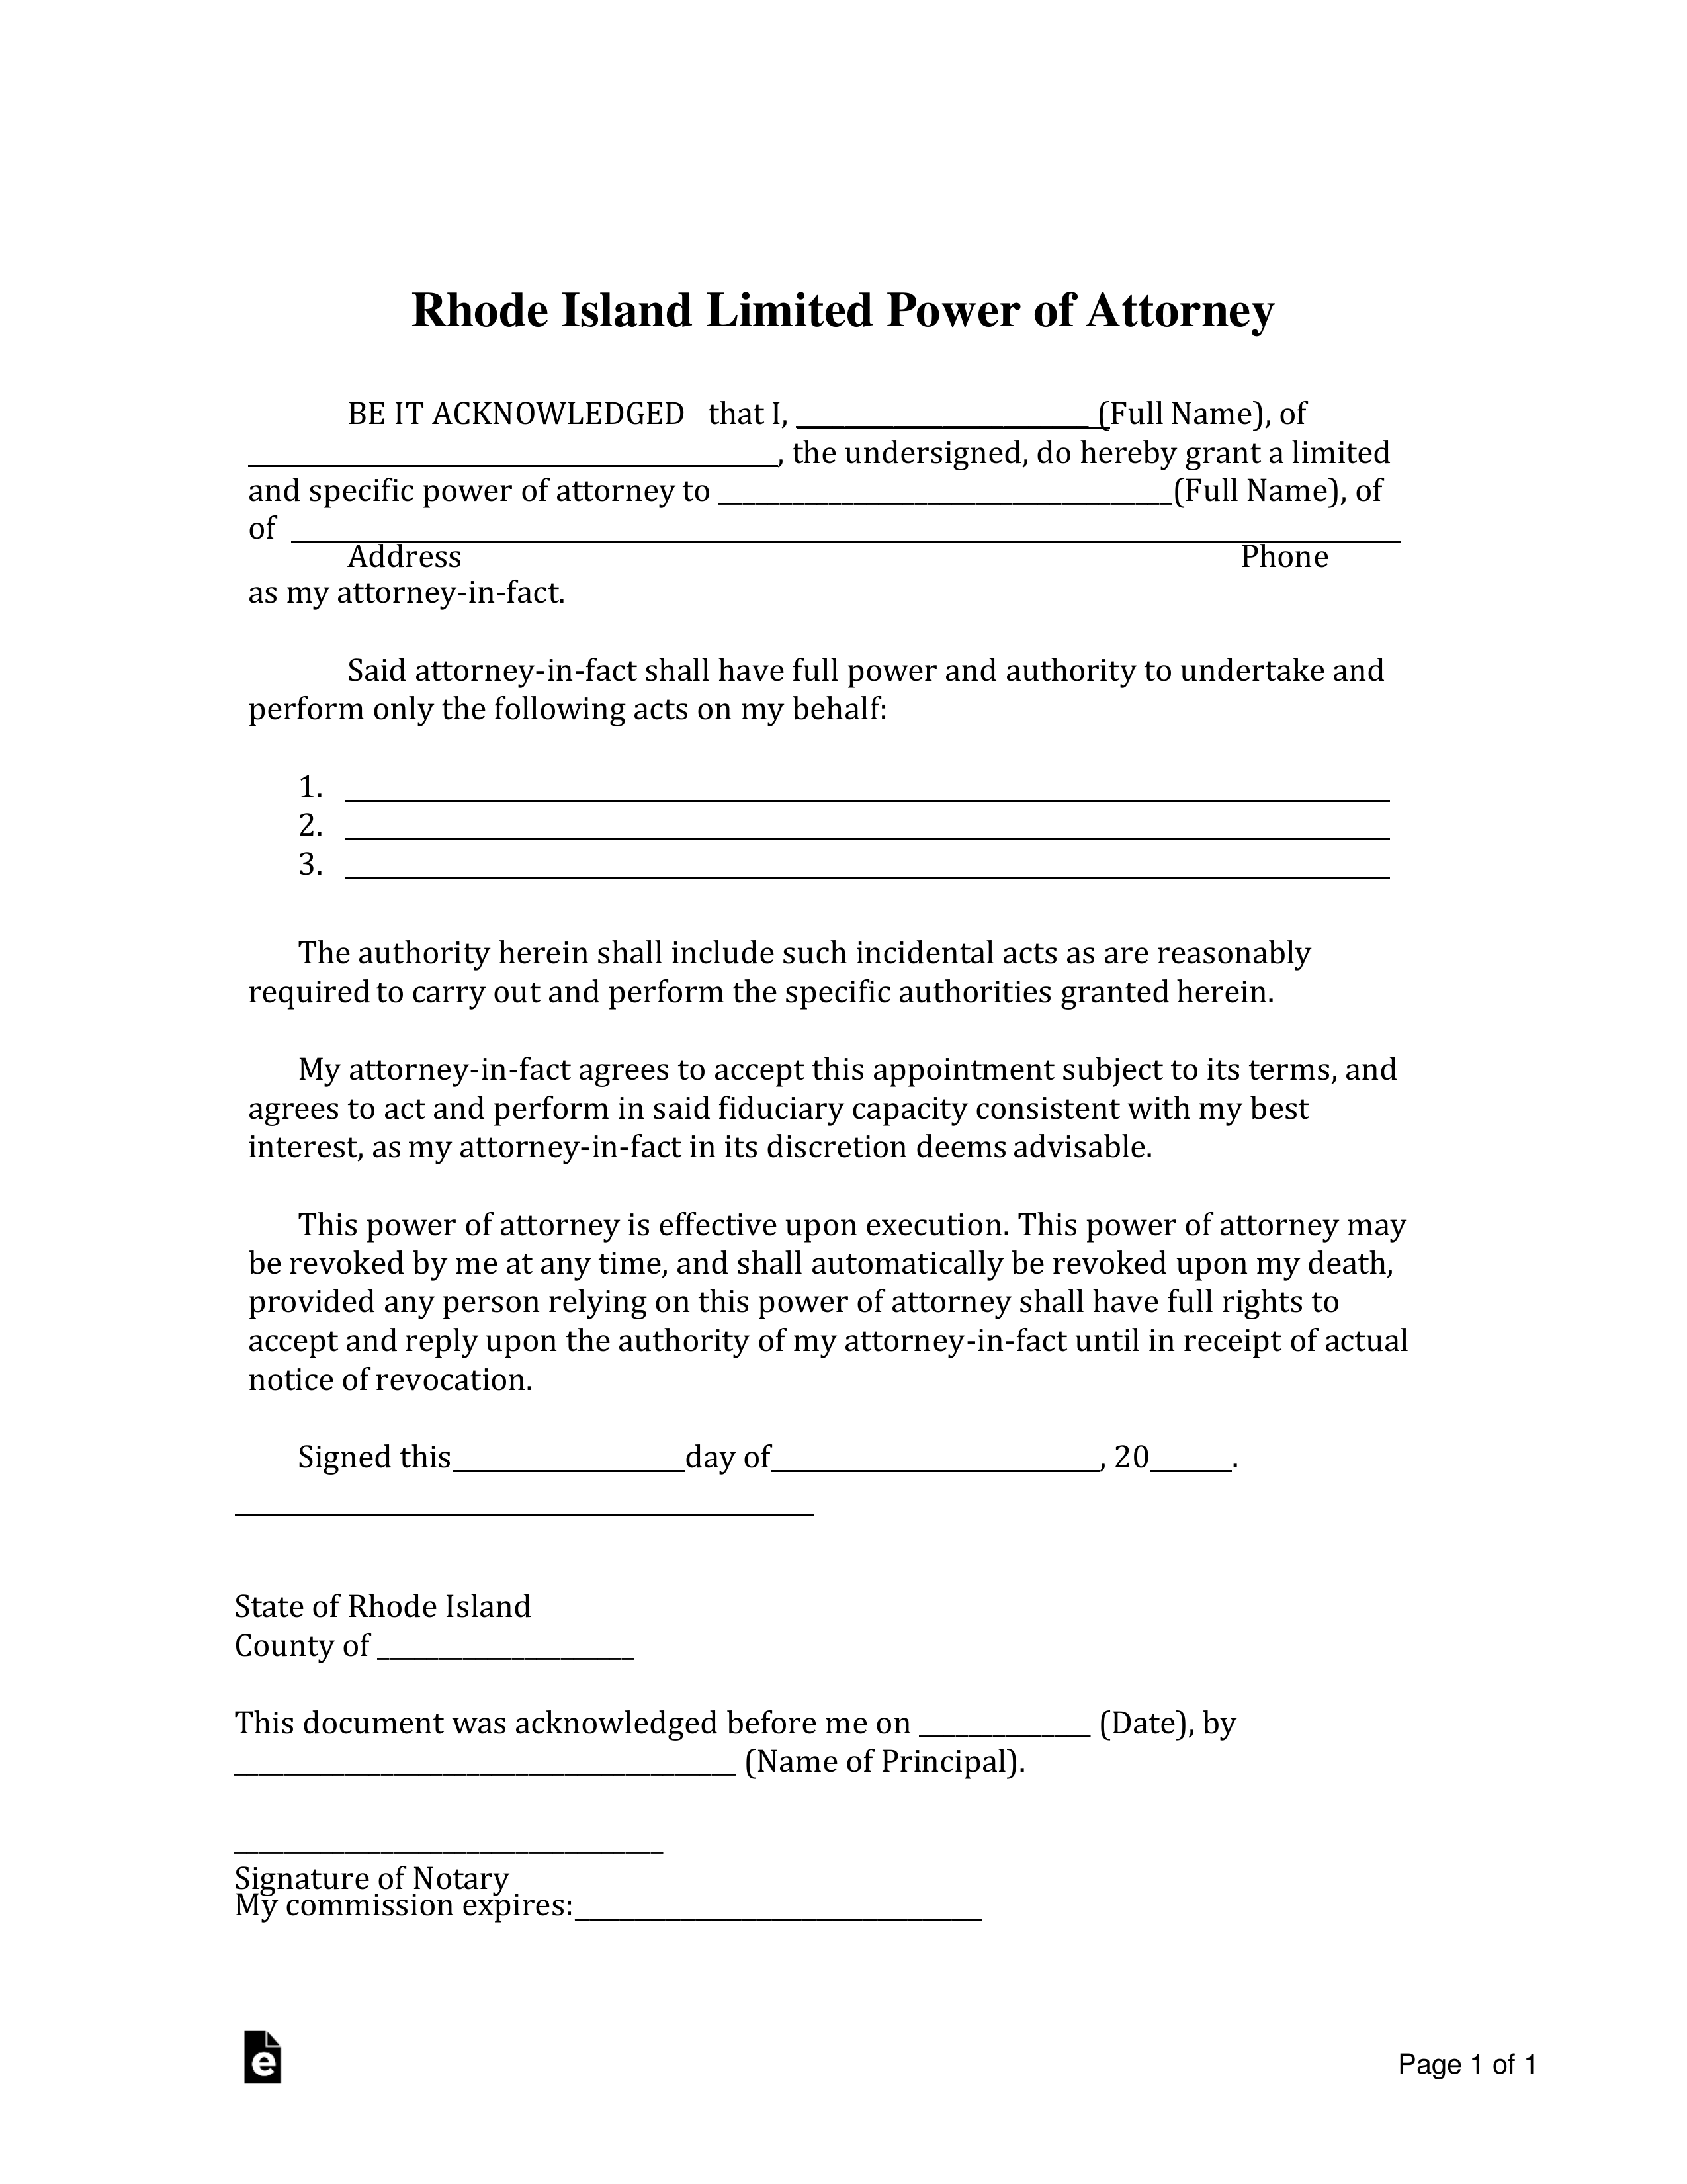 Free Rhode Island Limited Power Of Attorney Form Word